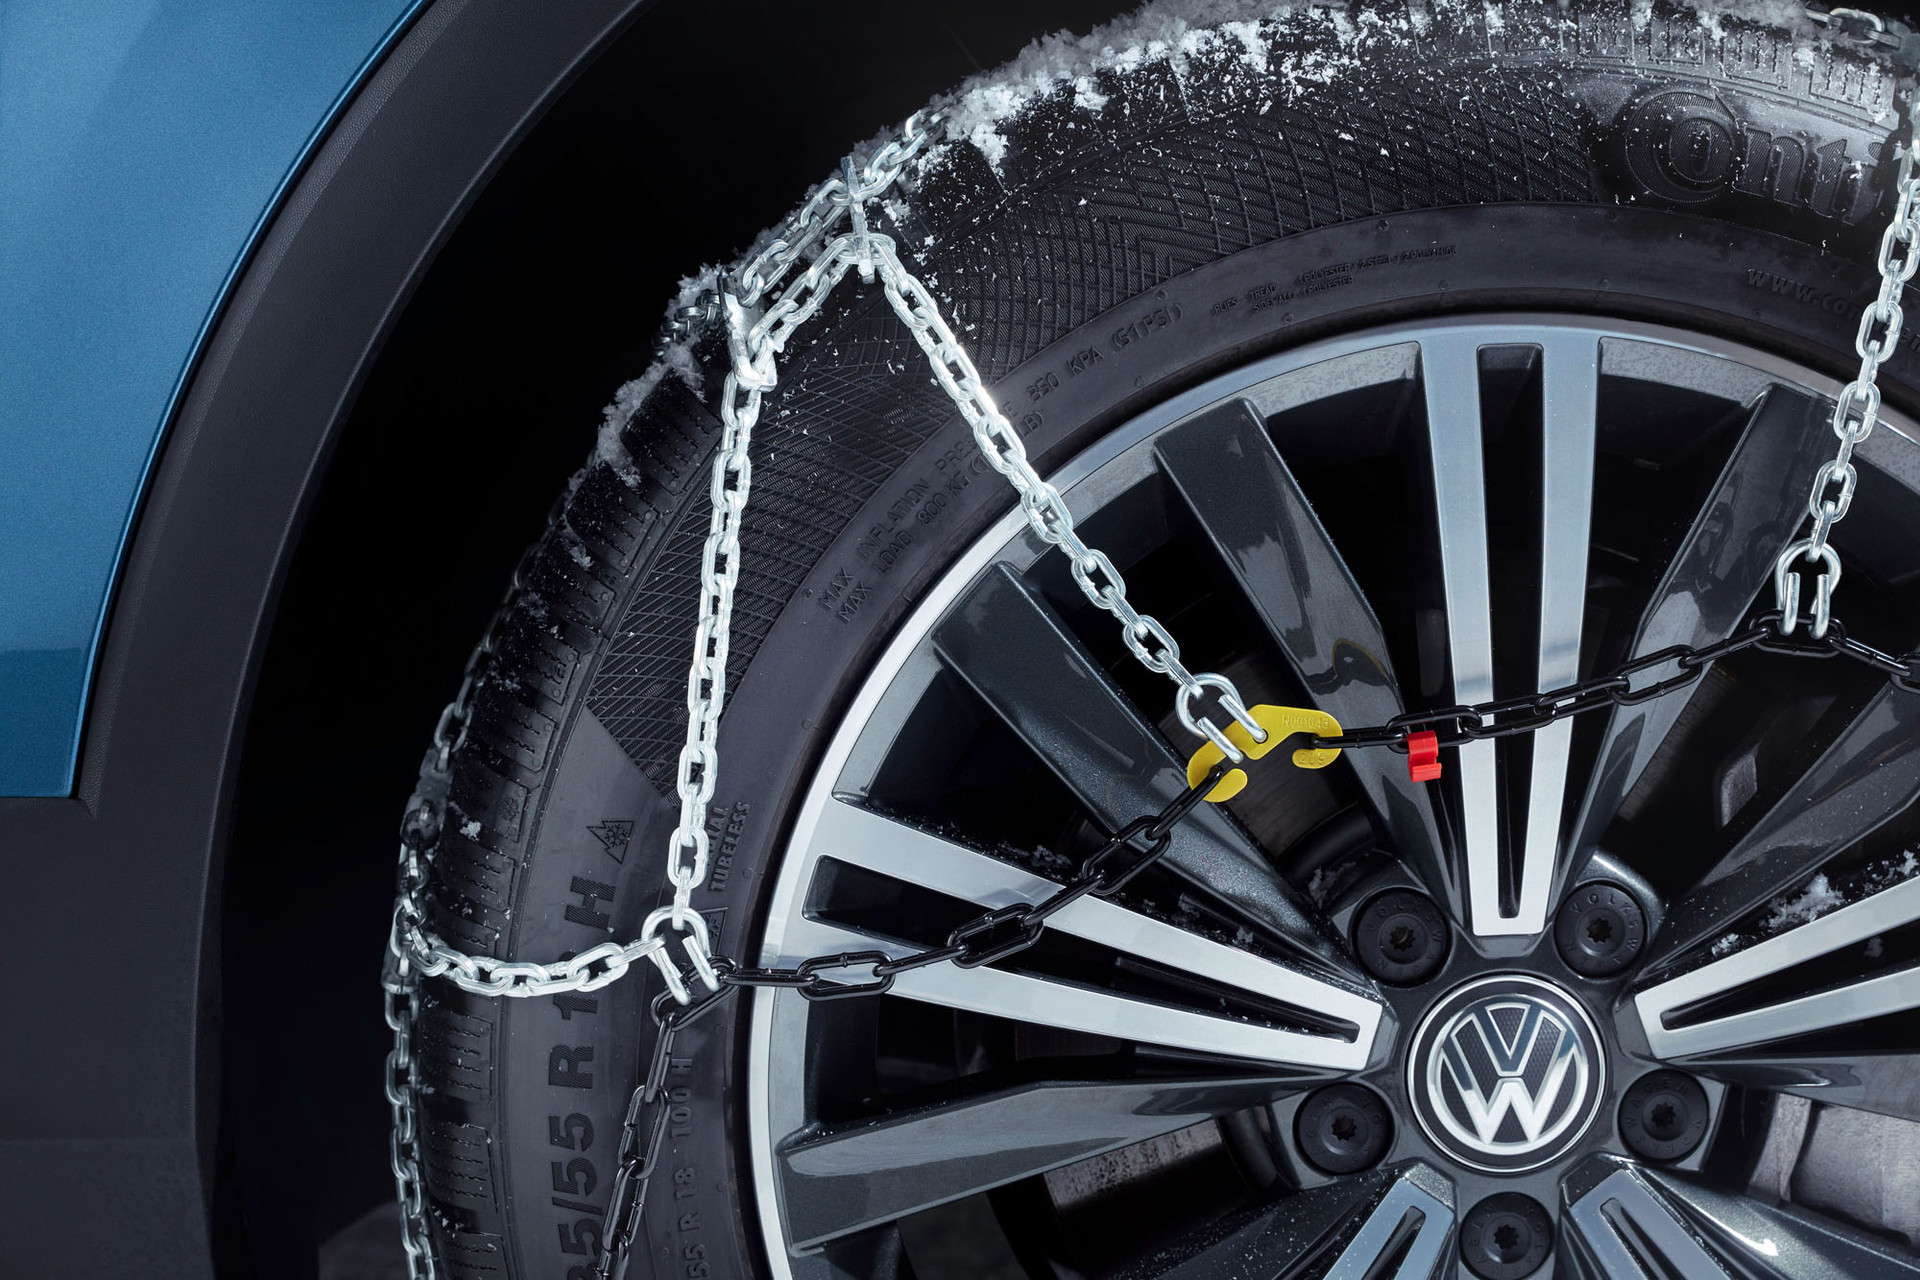 VW_RGB_Fit_fuer_den_Winter_Motiv_03_1485